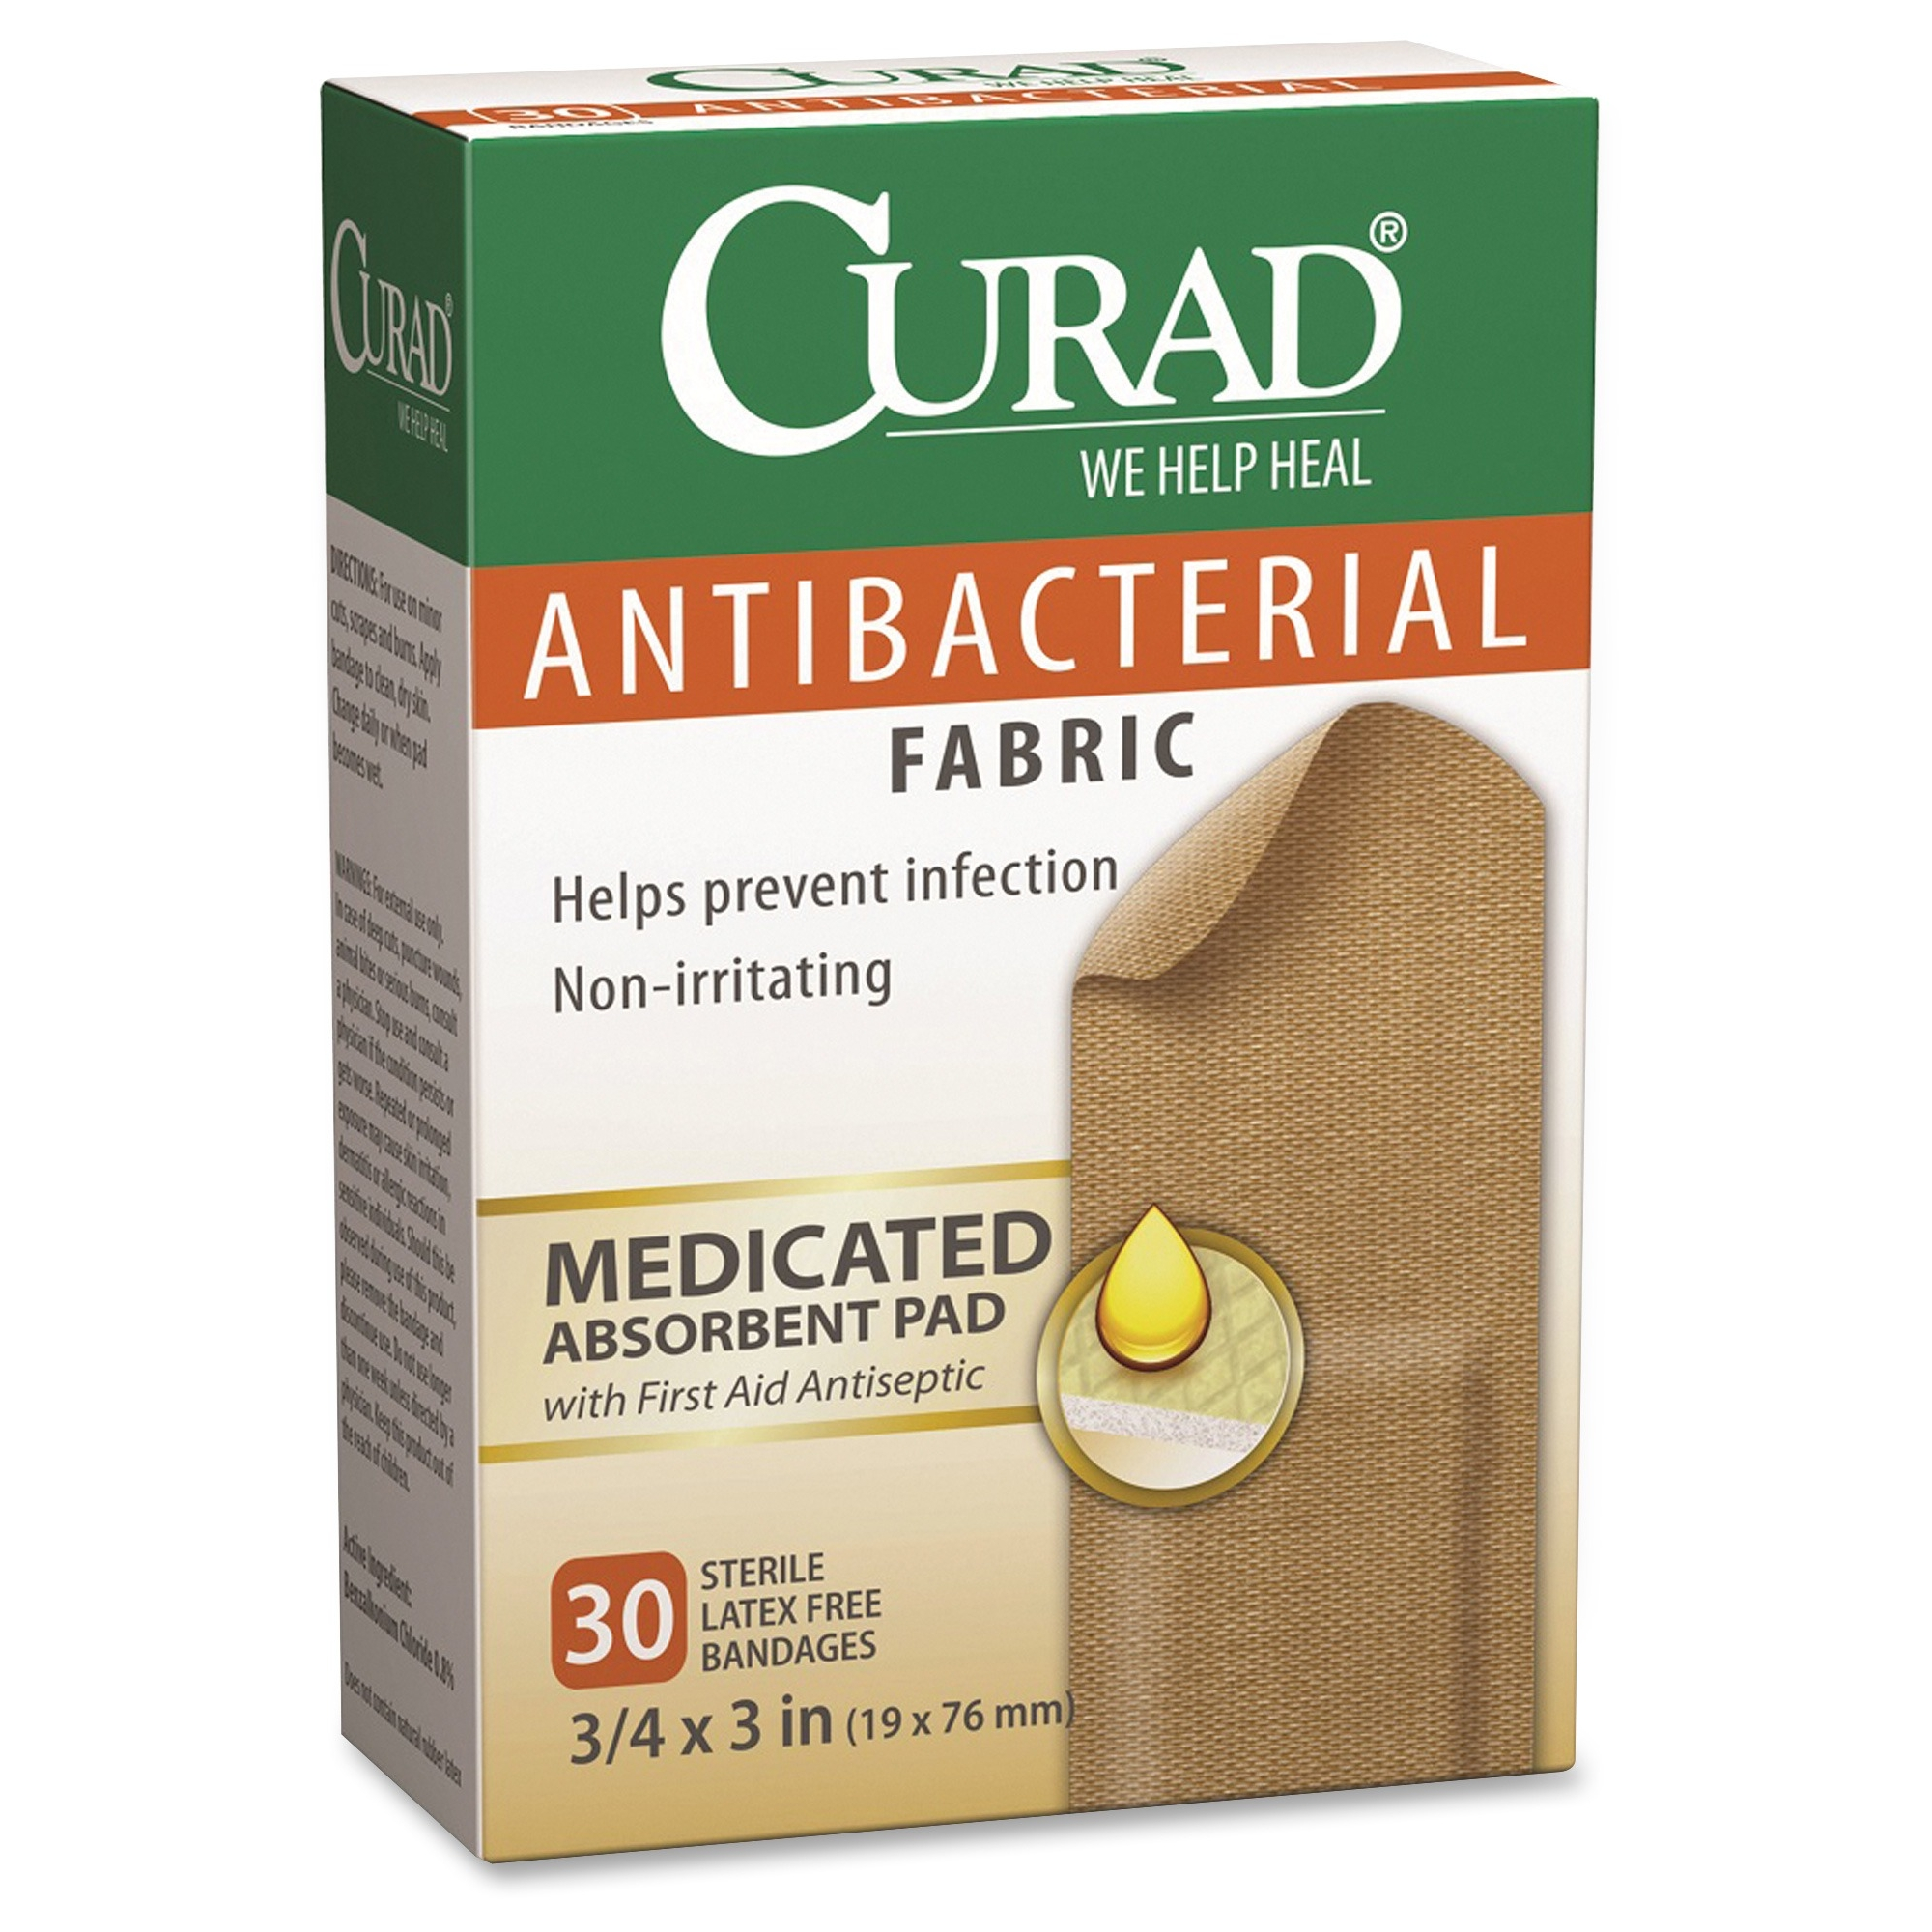 "Curad Antibacterial Fabric Bandages - 0.75"" X 3"" - 30/box - Brown (cur47255)"